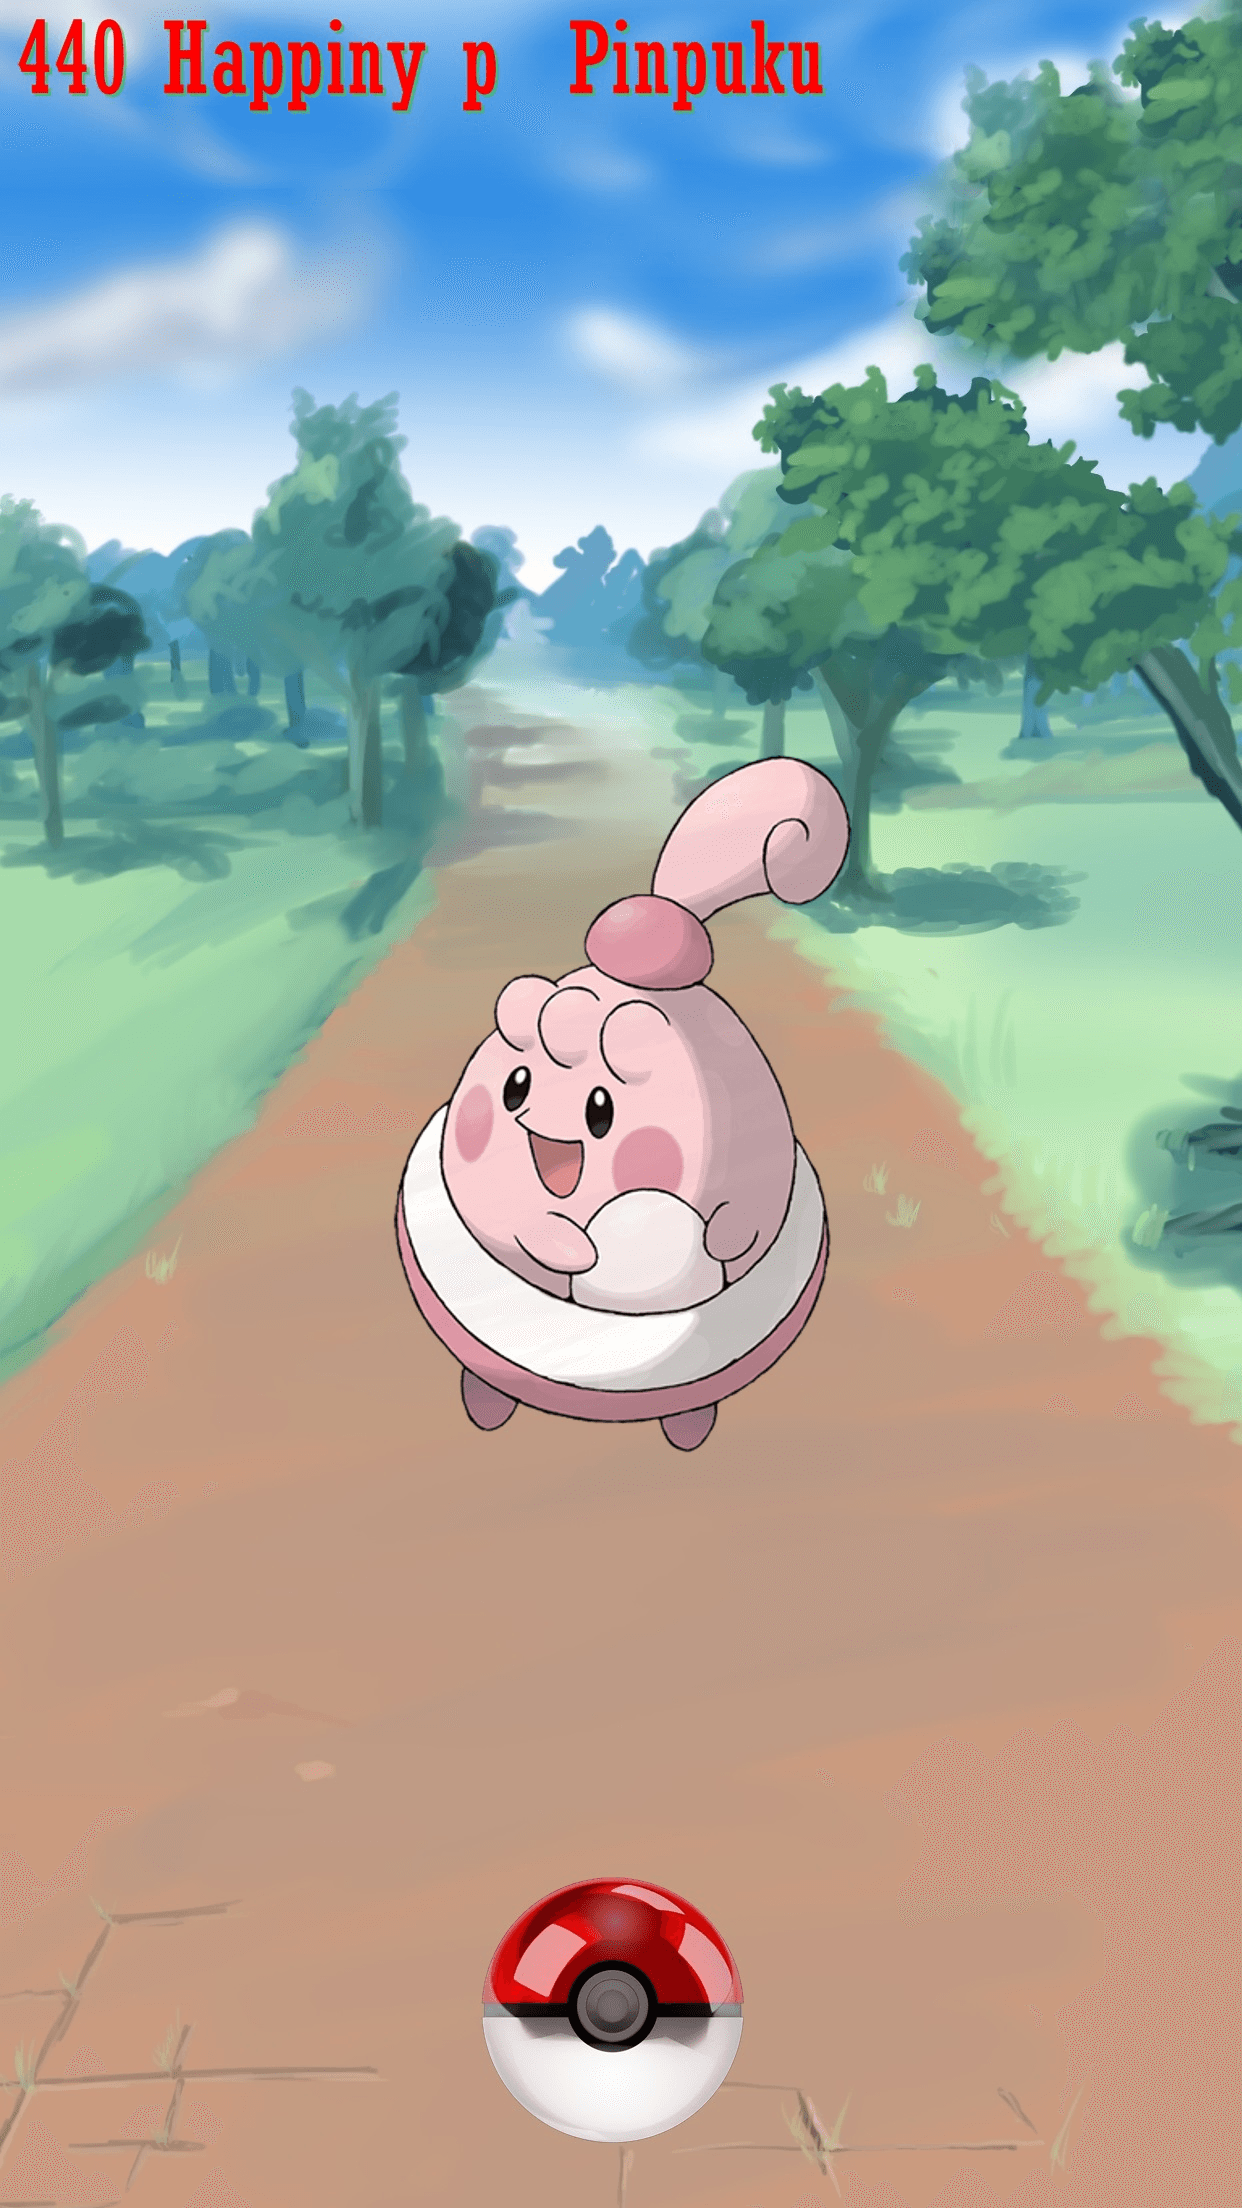 440 Street Pokeball Happiny p Pinpuku | Wallpaper